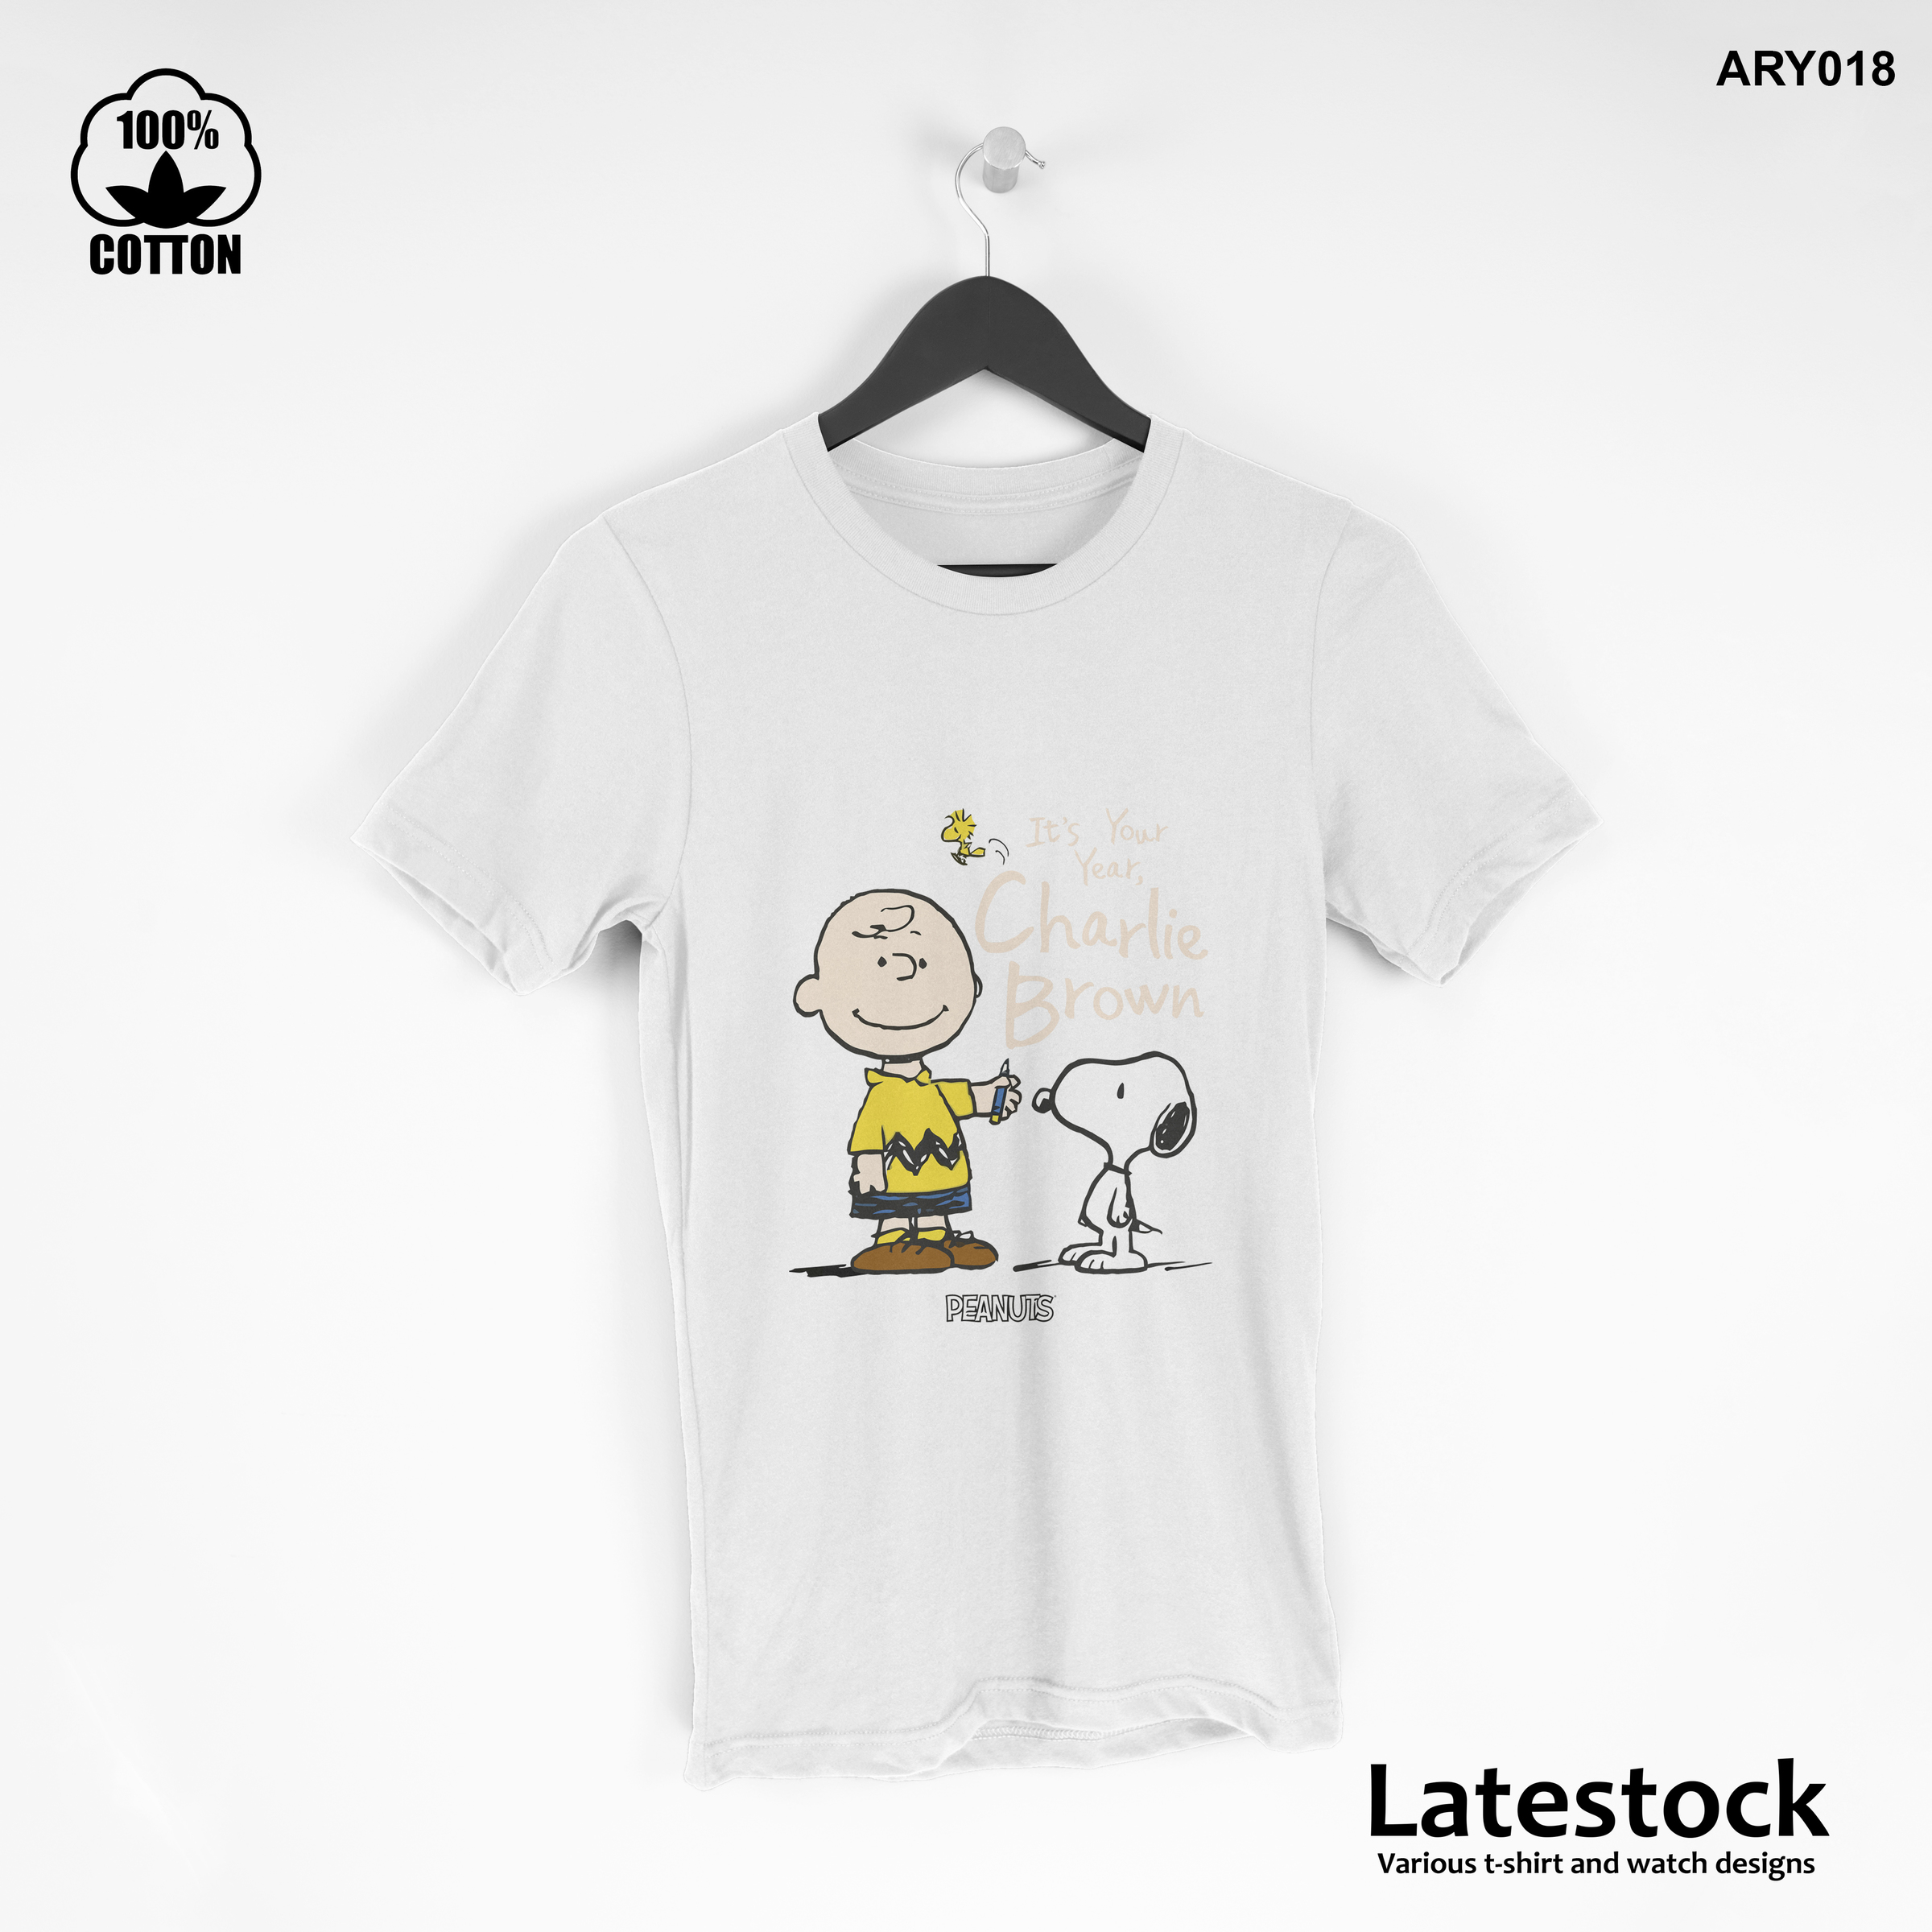 ARY018 Charlie brown WHITE.jpg